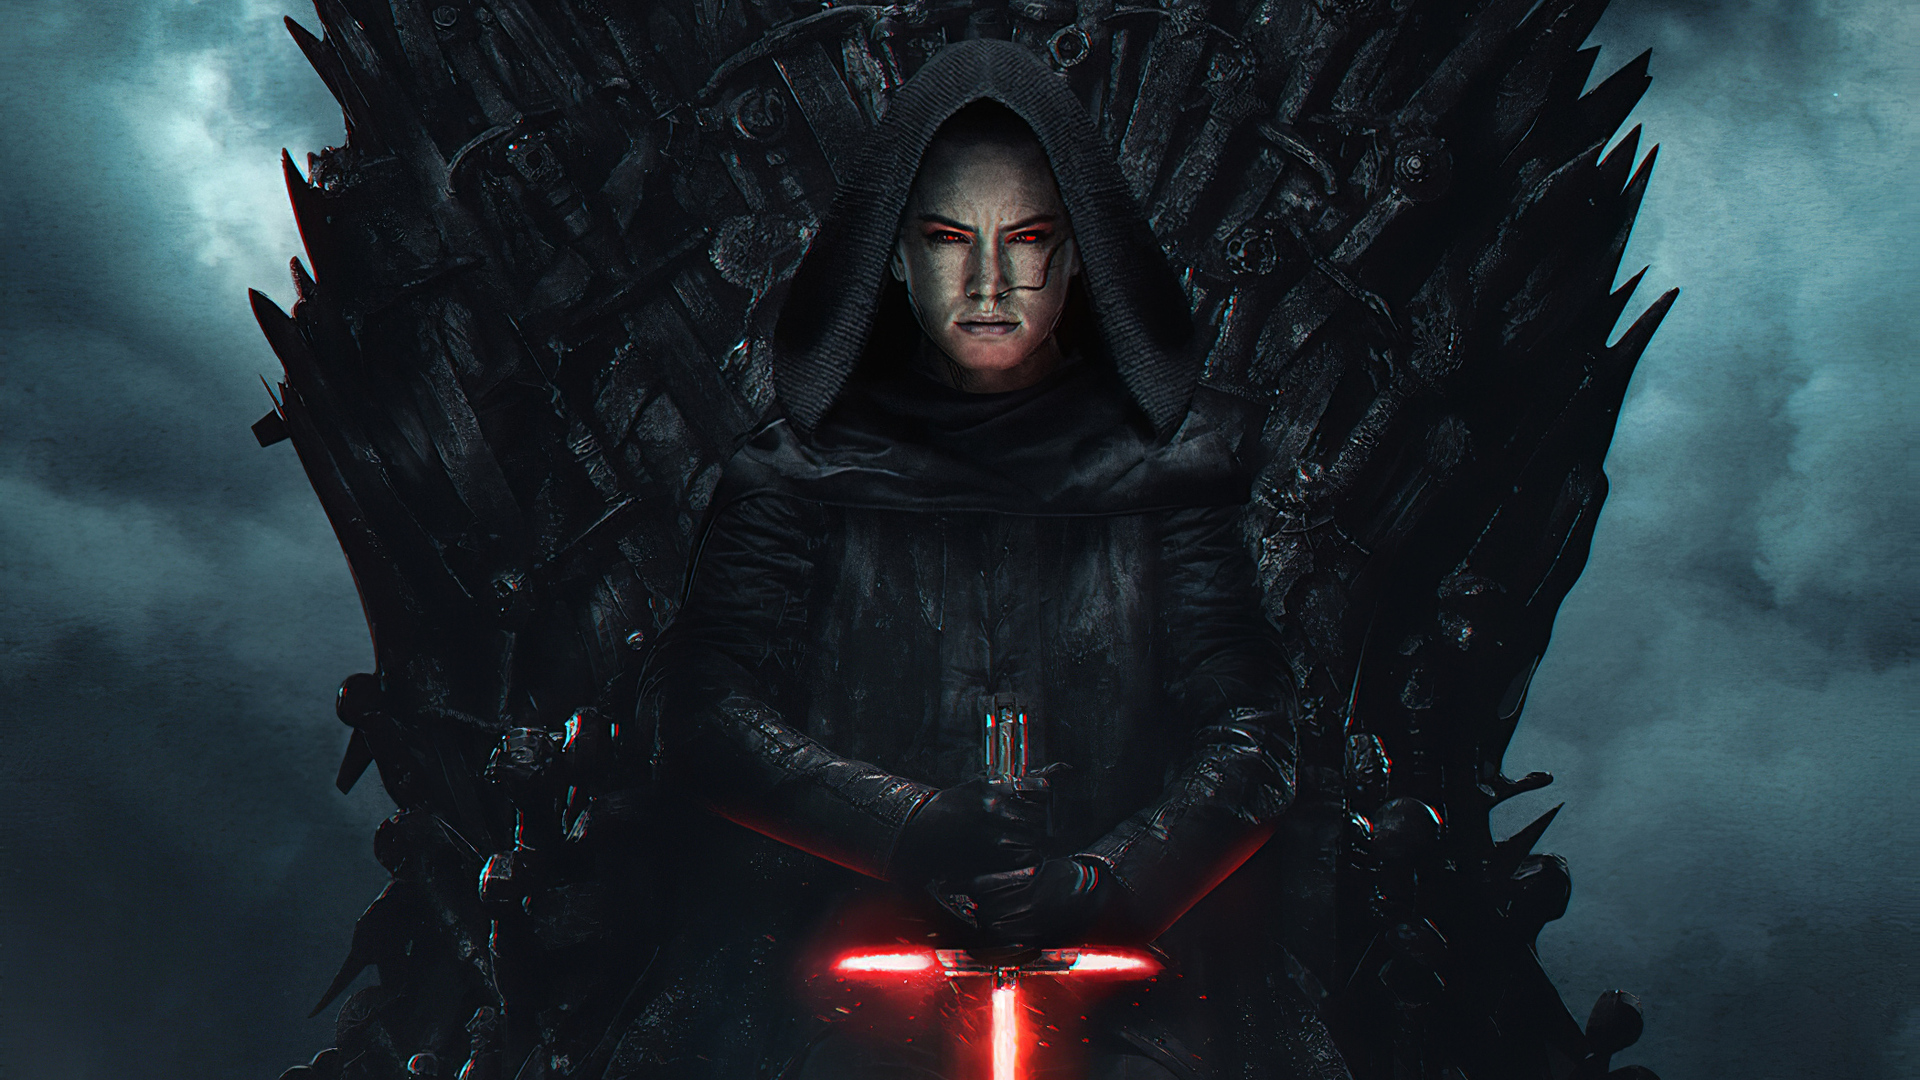 19x1080 Dark Rey Starwars Laptop Full Hd 1080p Hd 4k Wallpapers Images Backgrounds Photos And Pictures